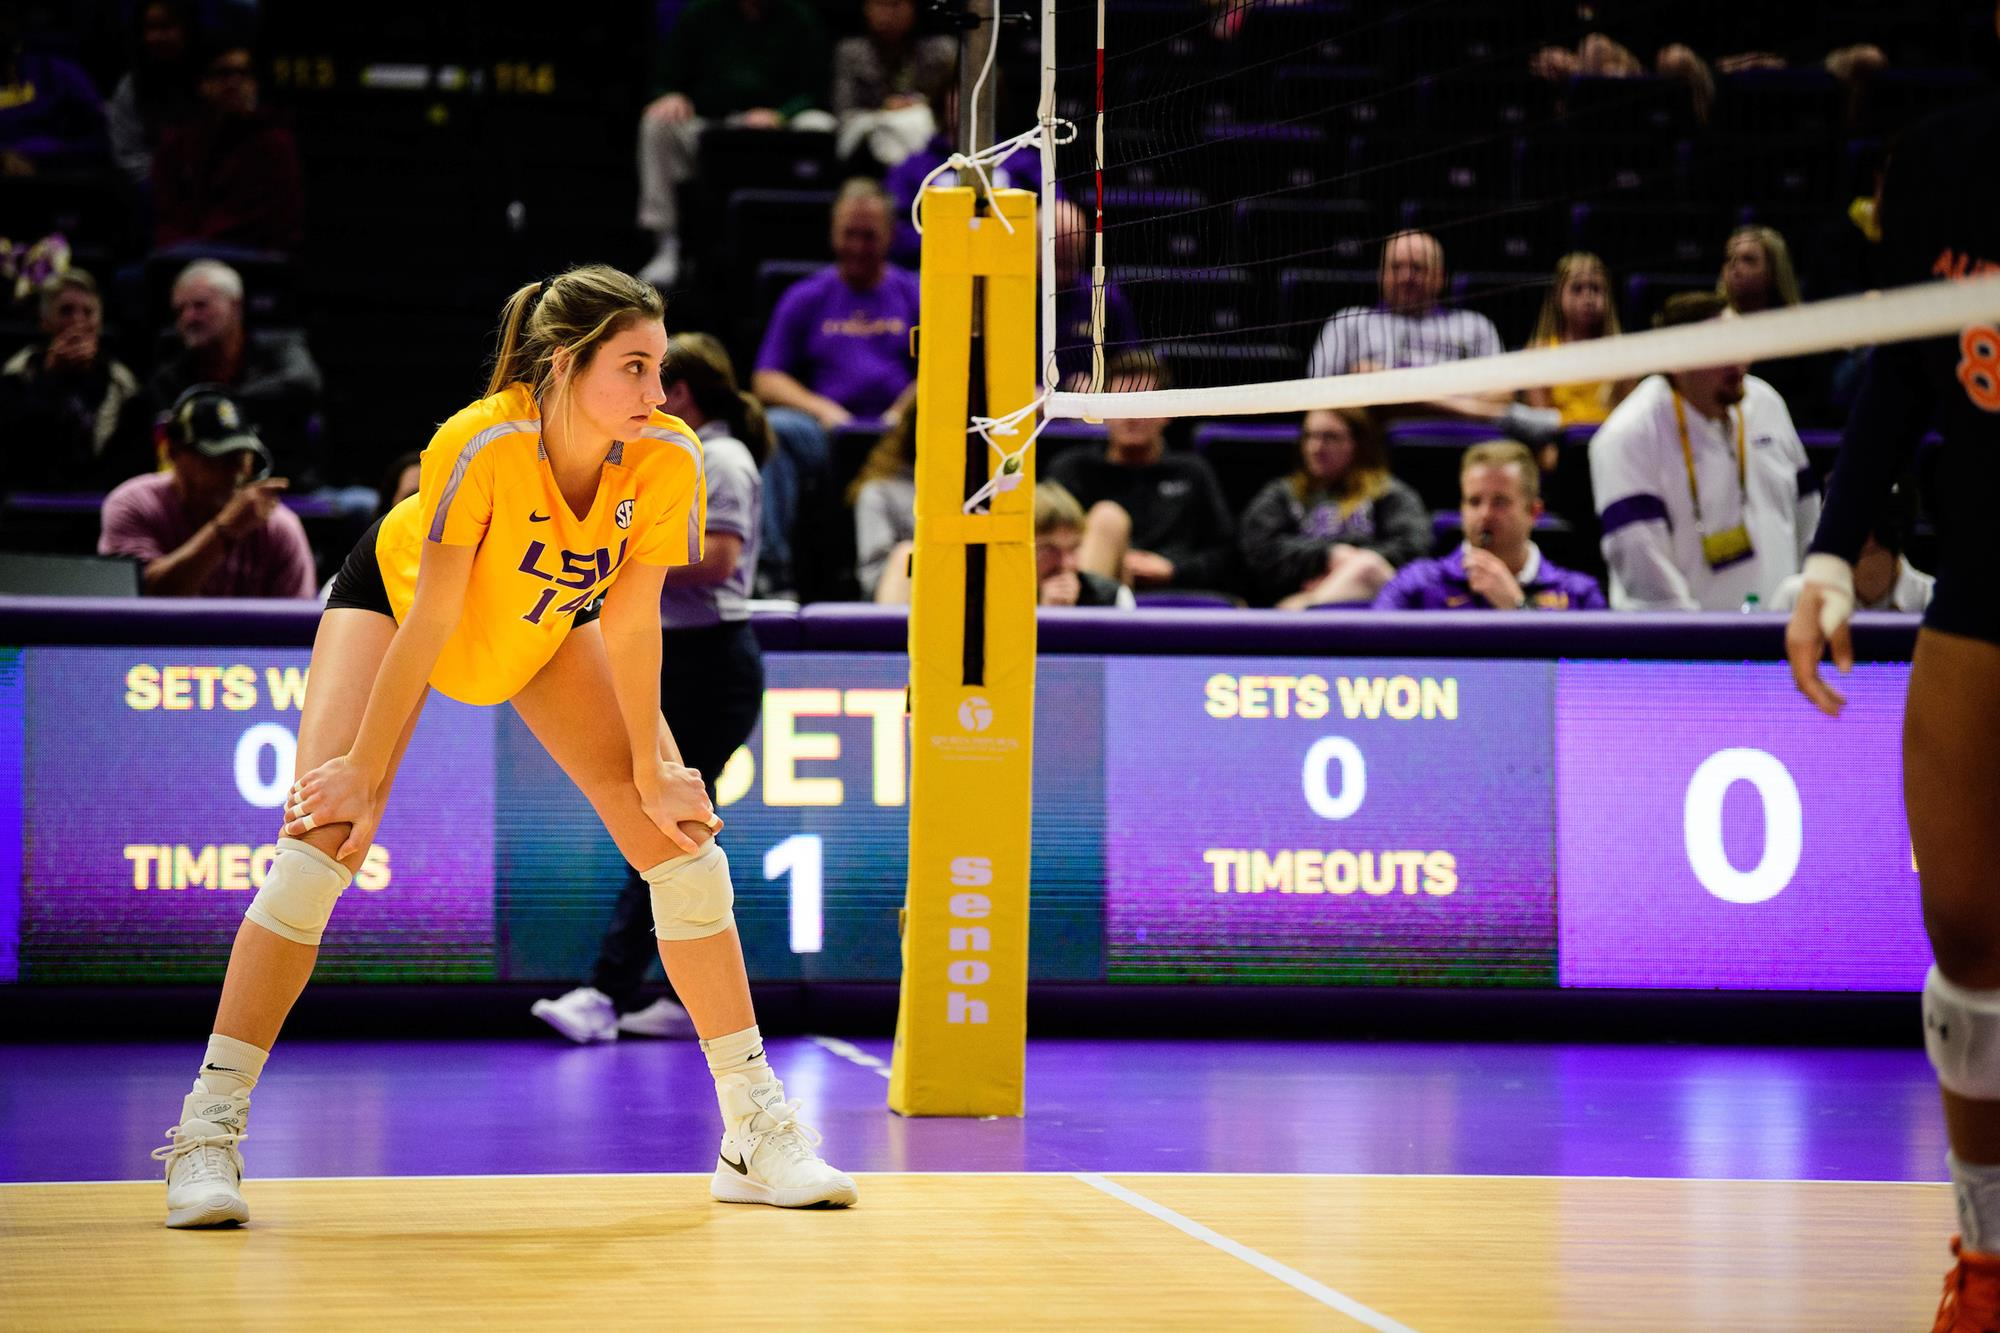 Allee Morris 2020 Volleyball Lsu Tigers